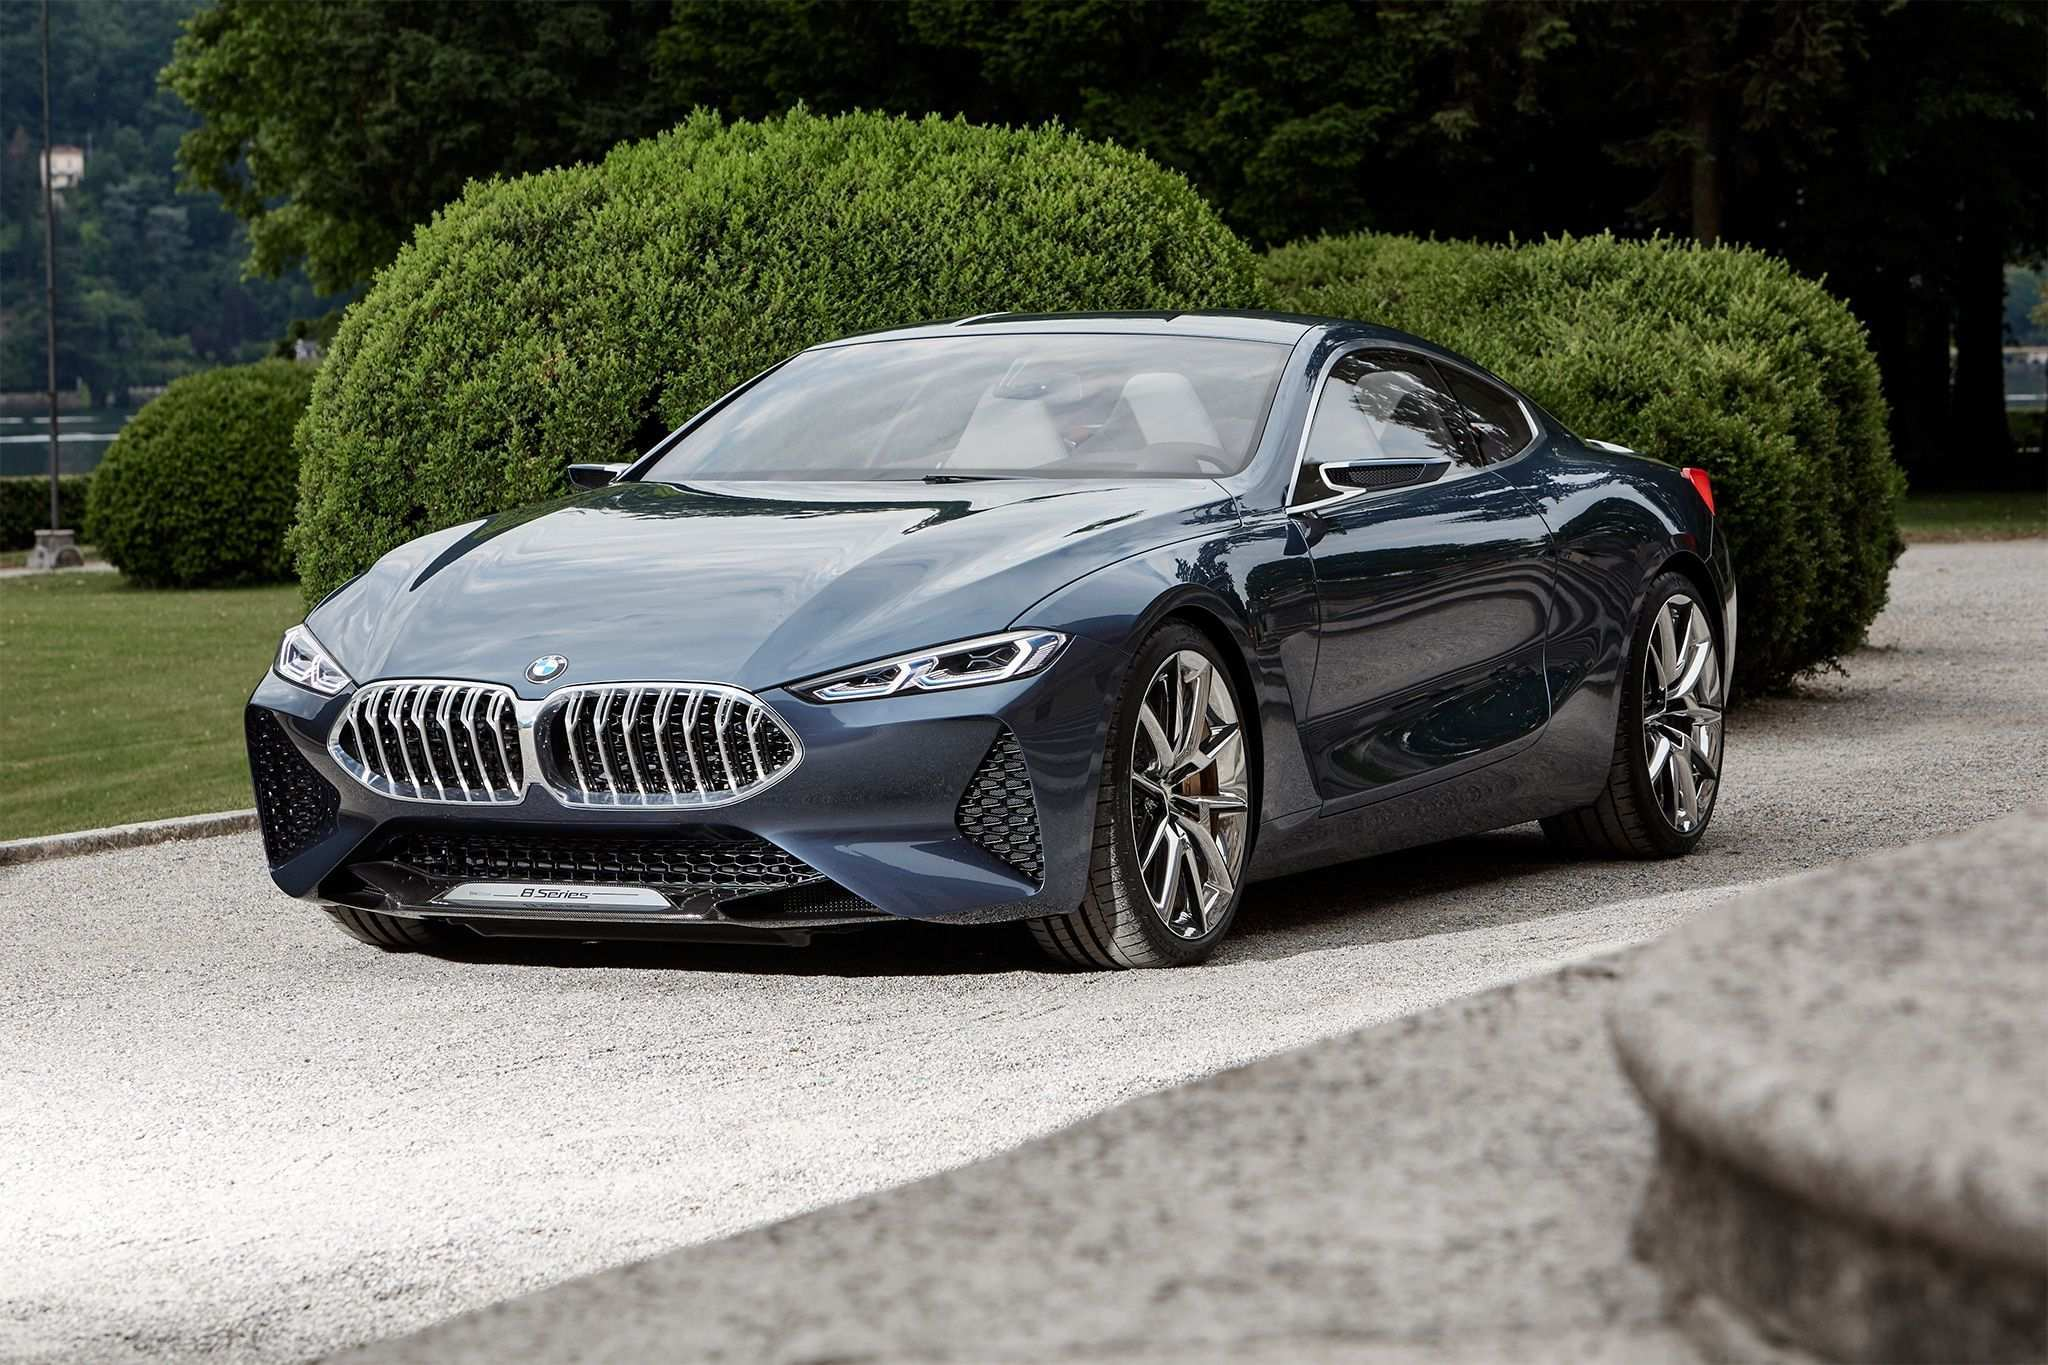 62 Best Review 2020 Bmw 850I Pricing by 2020 Bmw 850I